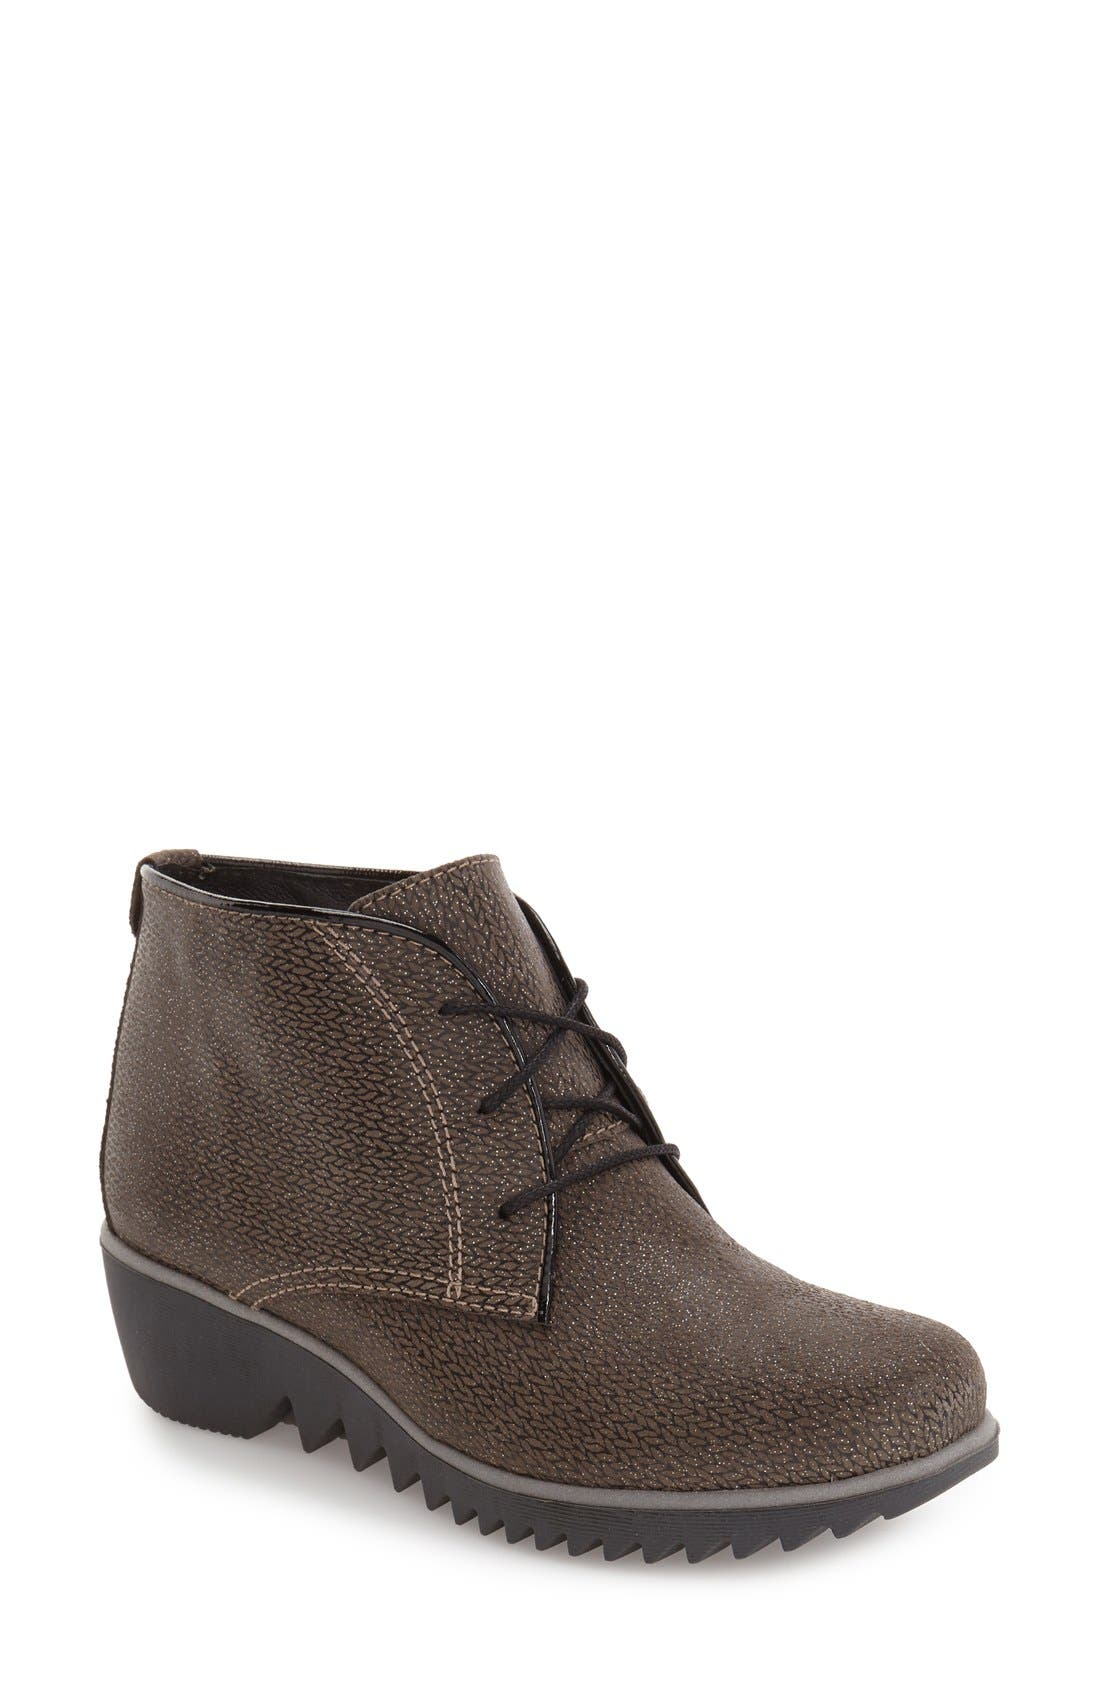 'Dusty' Hidden Wedge Bootie,                             Main thumbnail 1, color,                             TAUPE MALIBU SUEDE